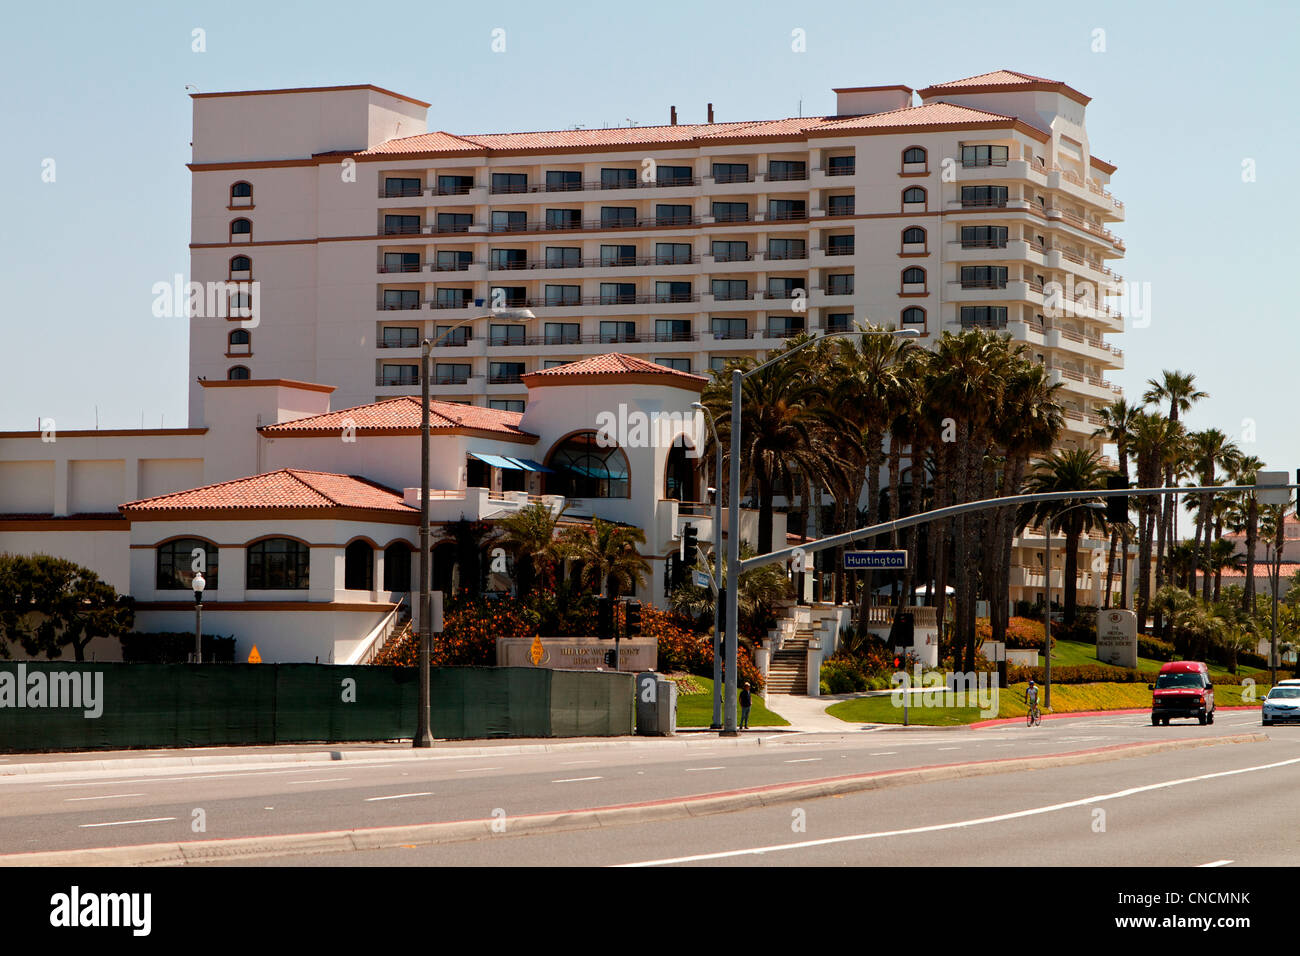 The Hilton waterfront Beach resort Huntington Beach California on highway one (PCH) - Stock Image